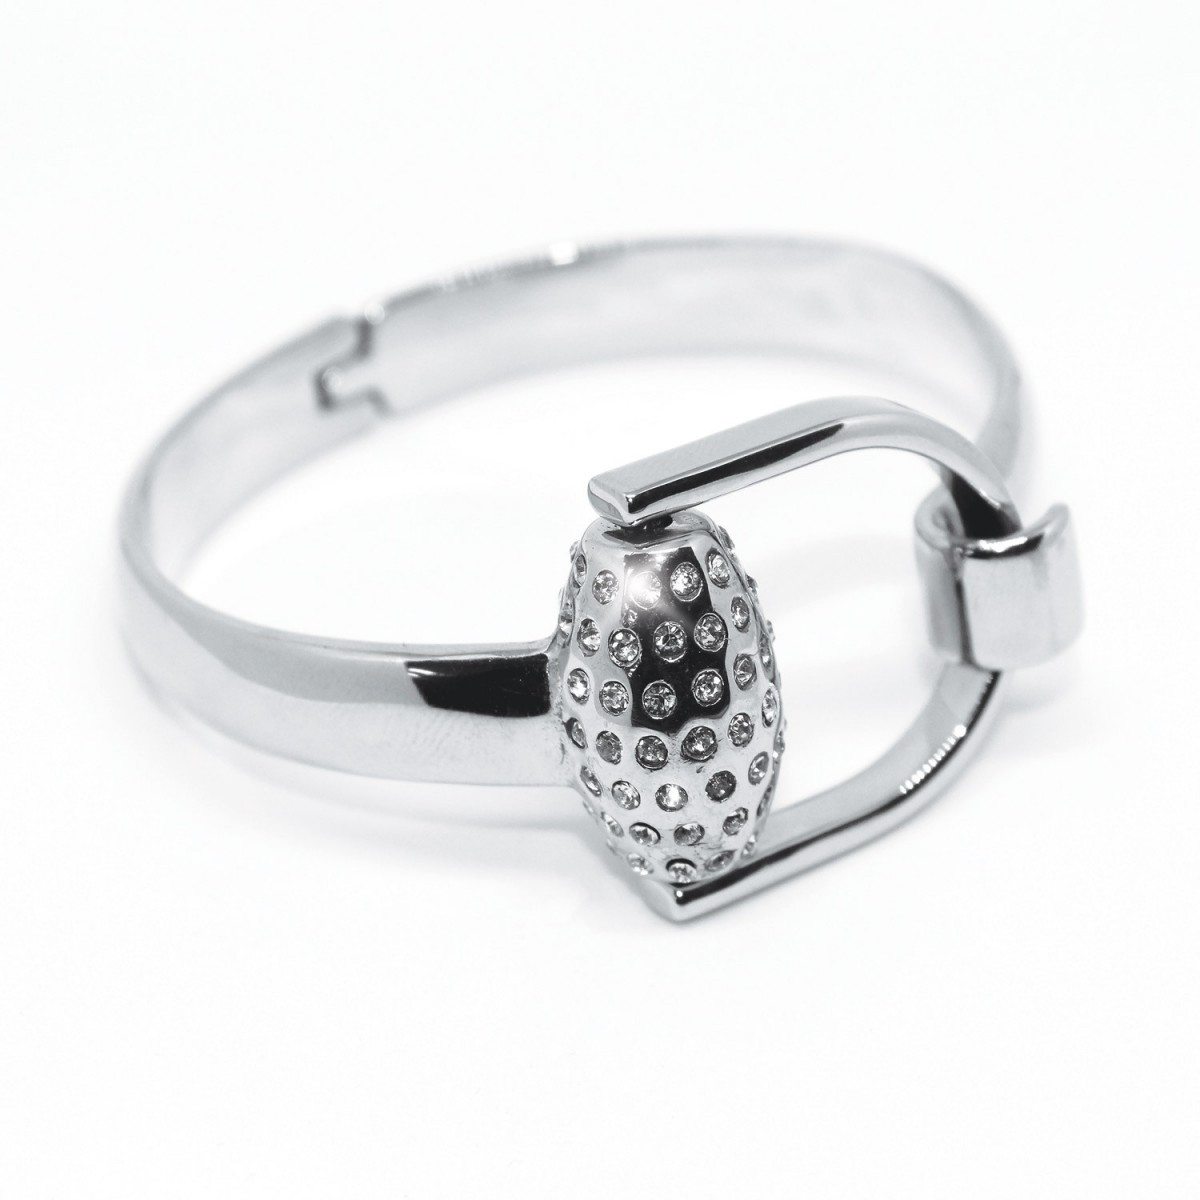 Gorgeous gift ideas for Christmas with our stunning Jewellery Ranges